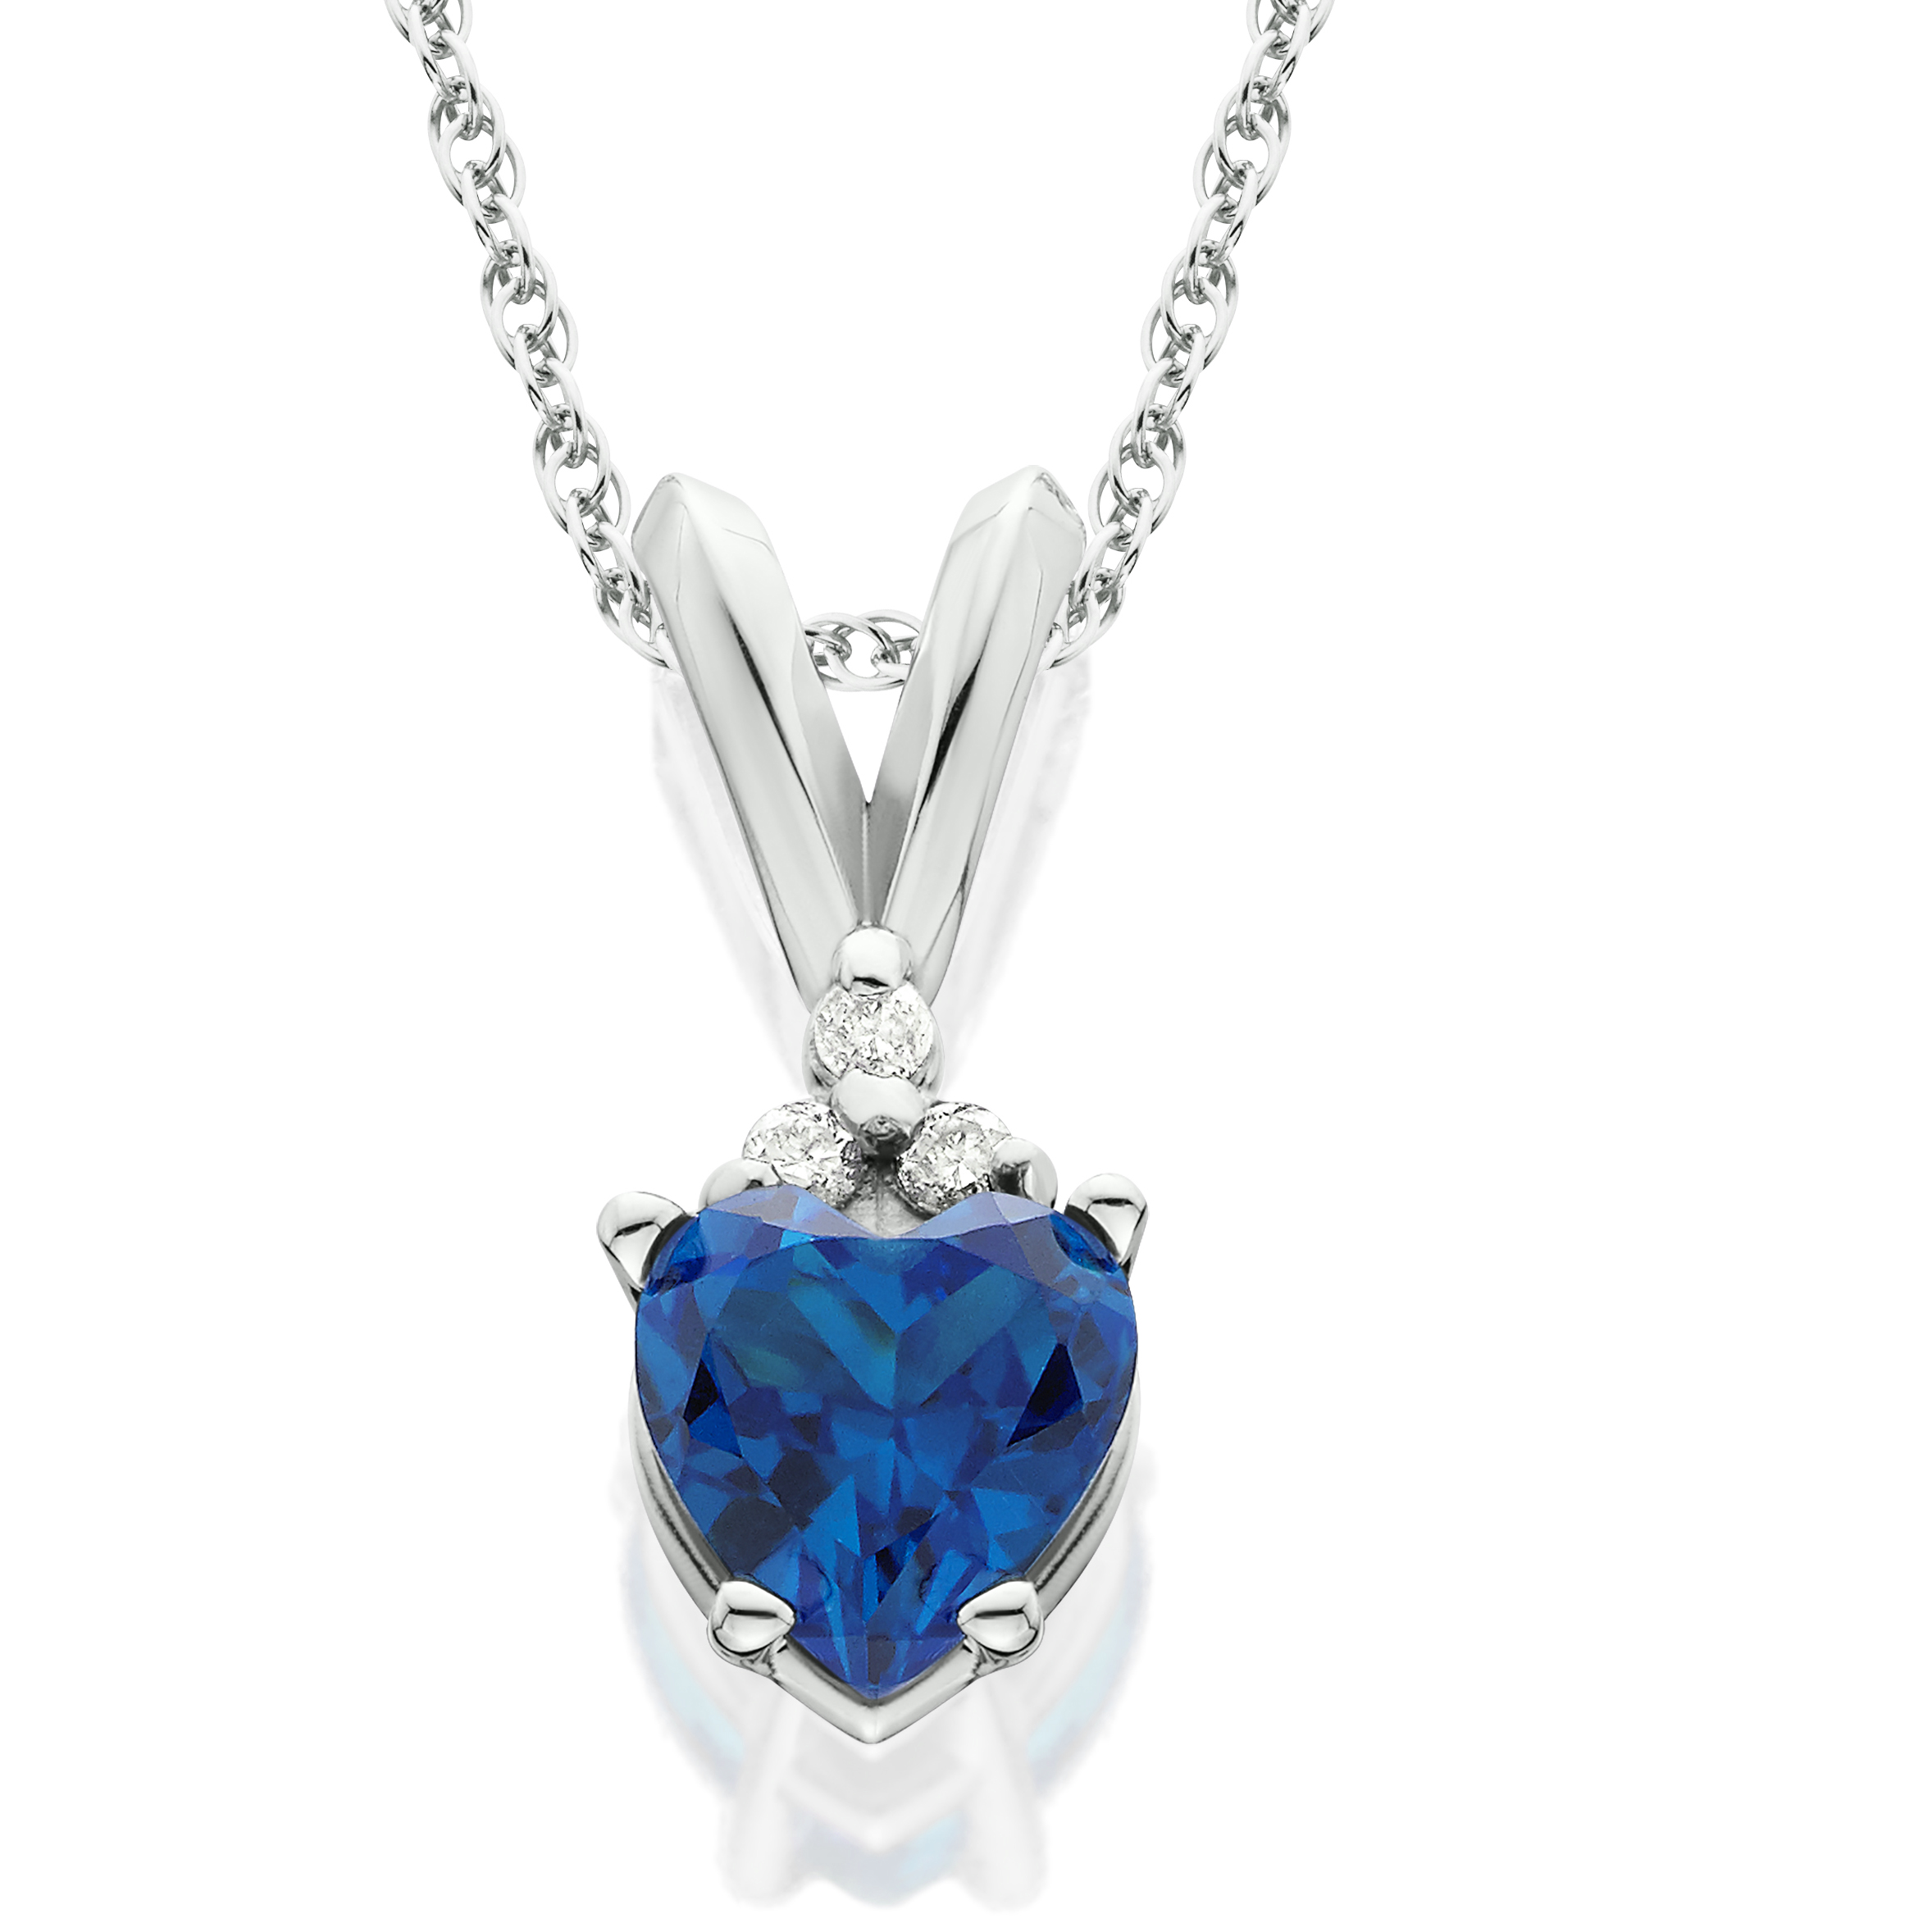 1 2ct Diamond & Simulated Blue Sapphire Heart Pendant 14K White Gold by Pompeii3